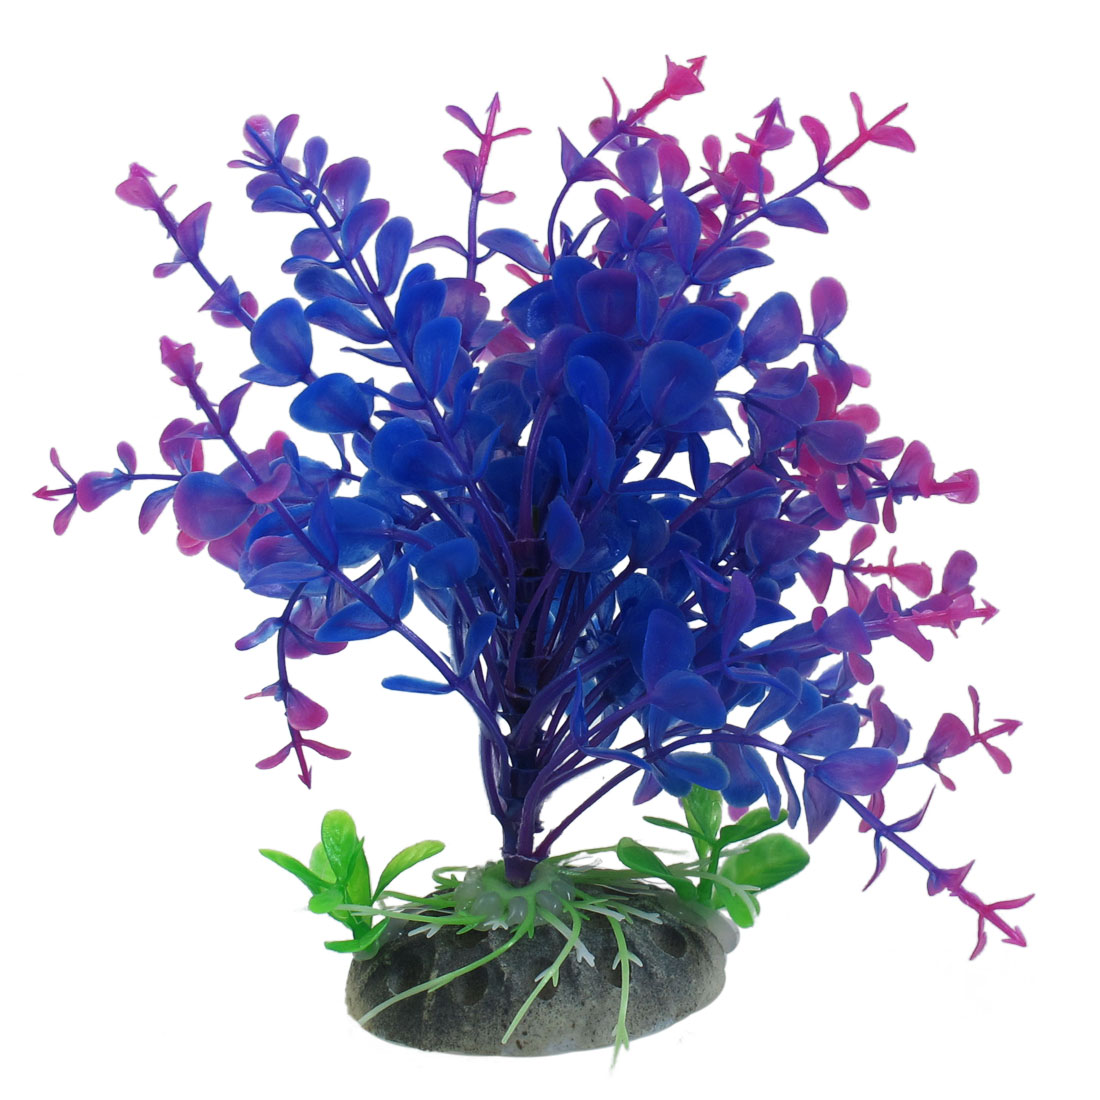 Fish-Tank-Ornament-Blue-Purple-Magenta-Plastic-Plants-5-9-Height